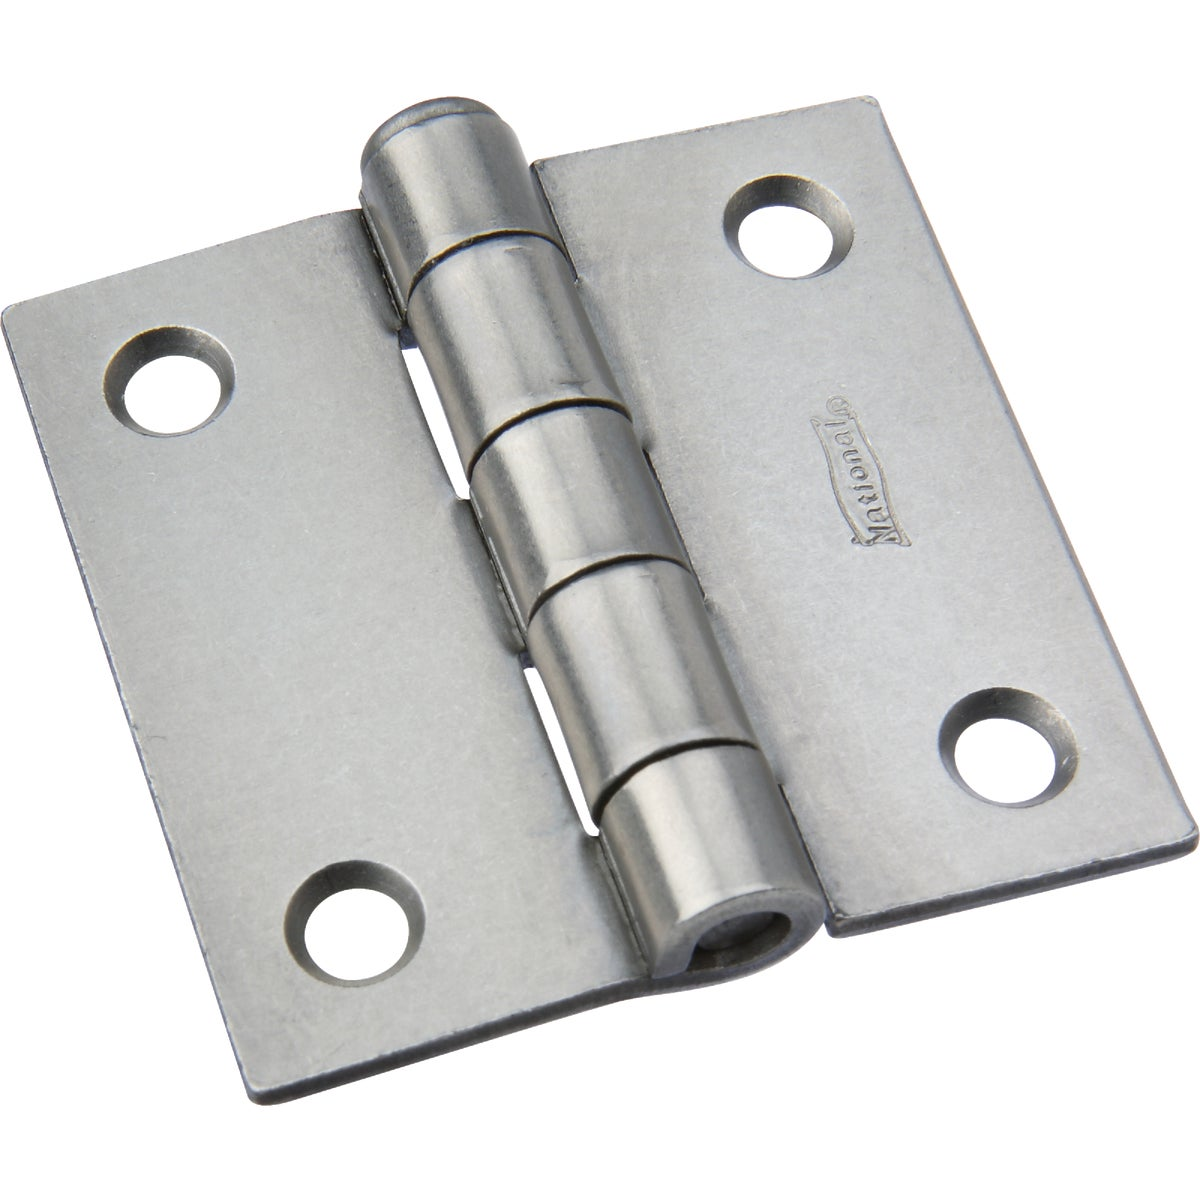 "2"" BROAD HINGE - N139659 by National Mfg Co"